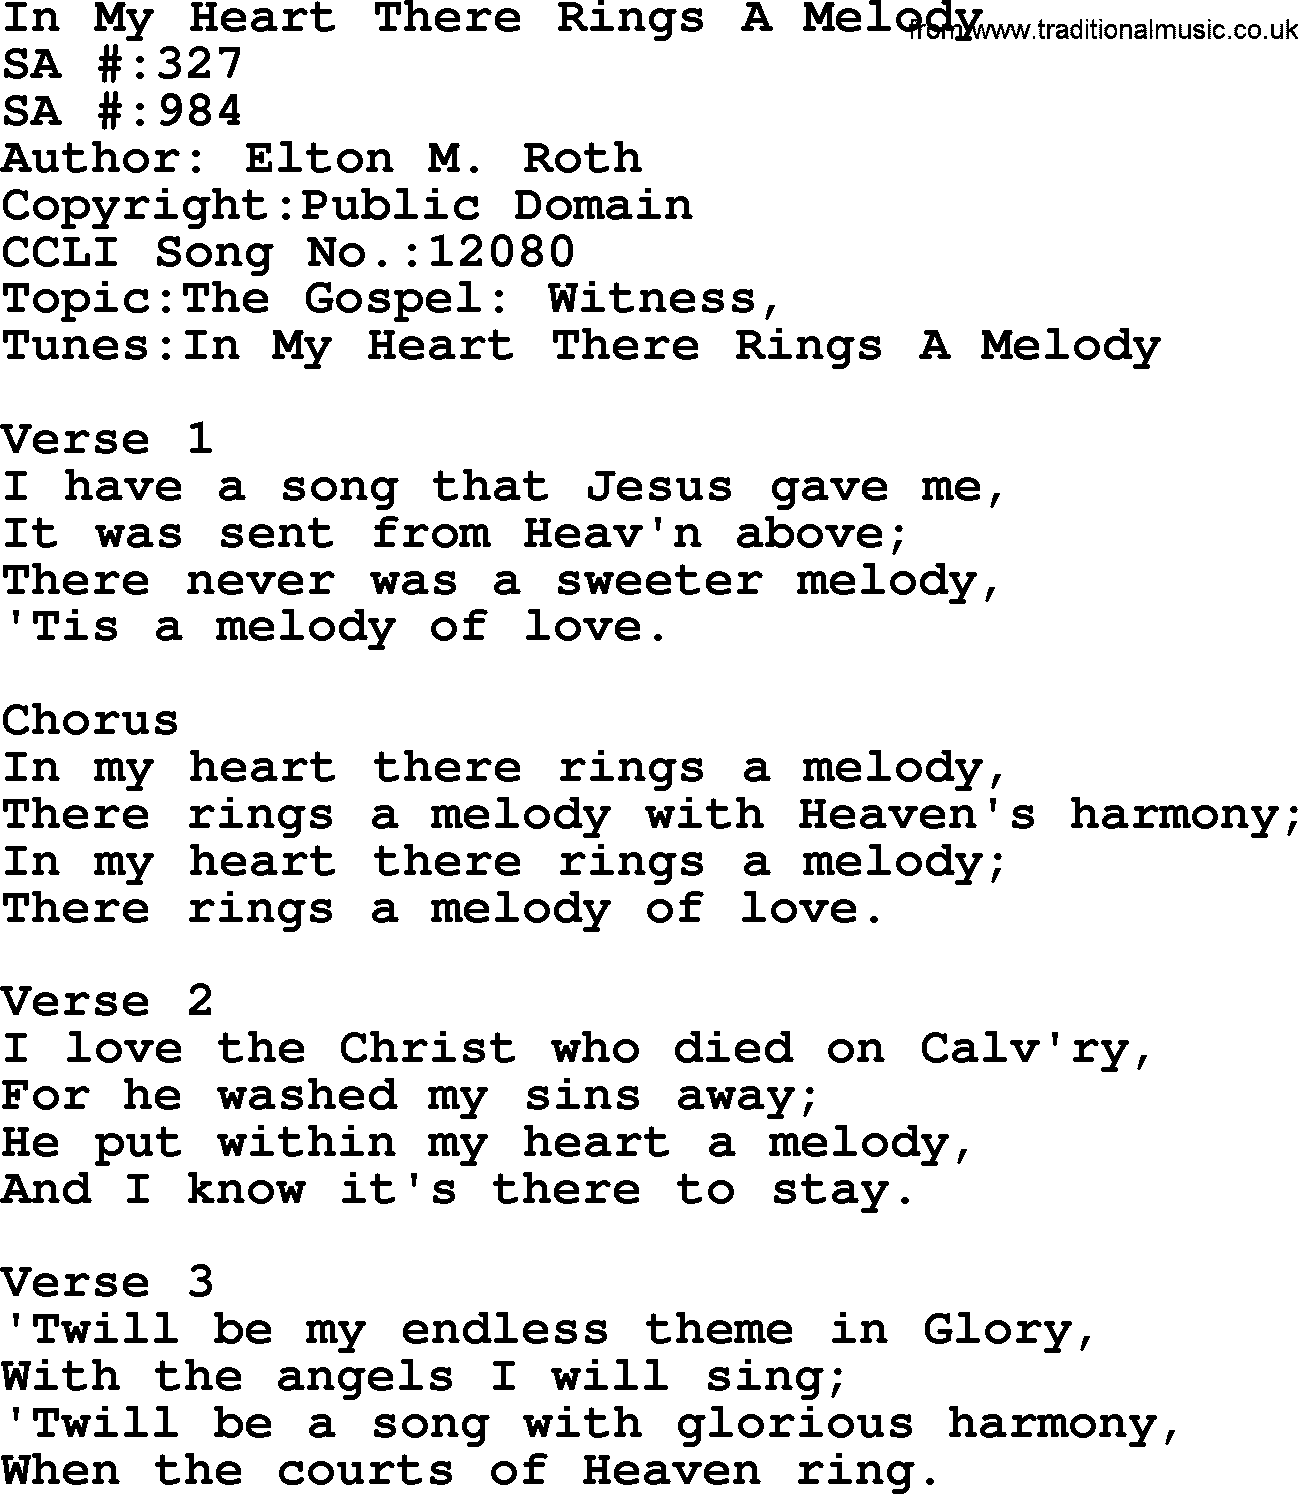 Salvation Army Hymnal Song: In My Heart There Rings A Melody